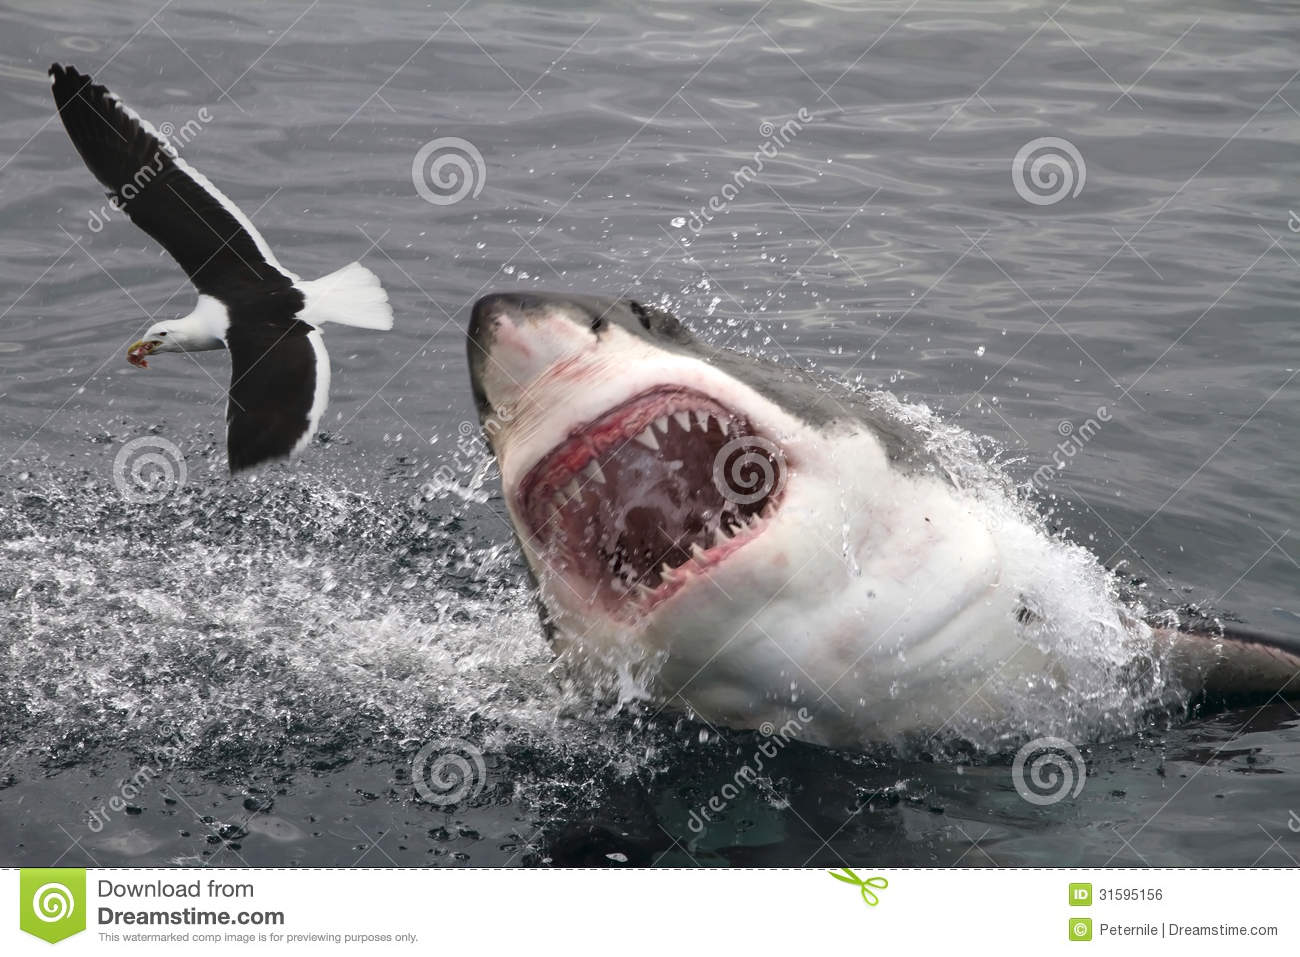 http://thumbs.dreamstime.com/z/attack-great-white-shark-attacking-sea-gull-31595156.jpg